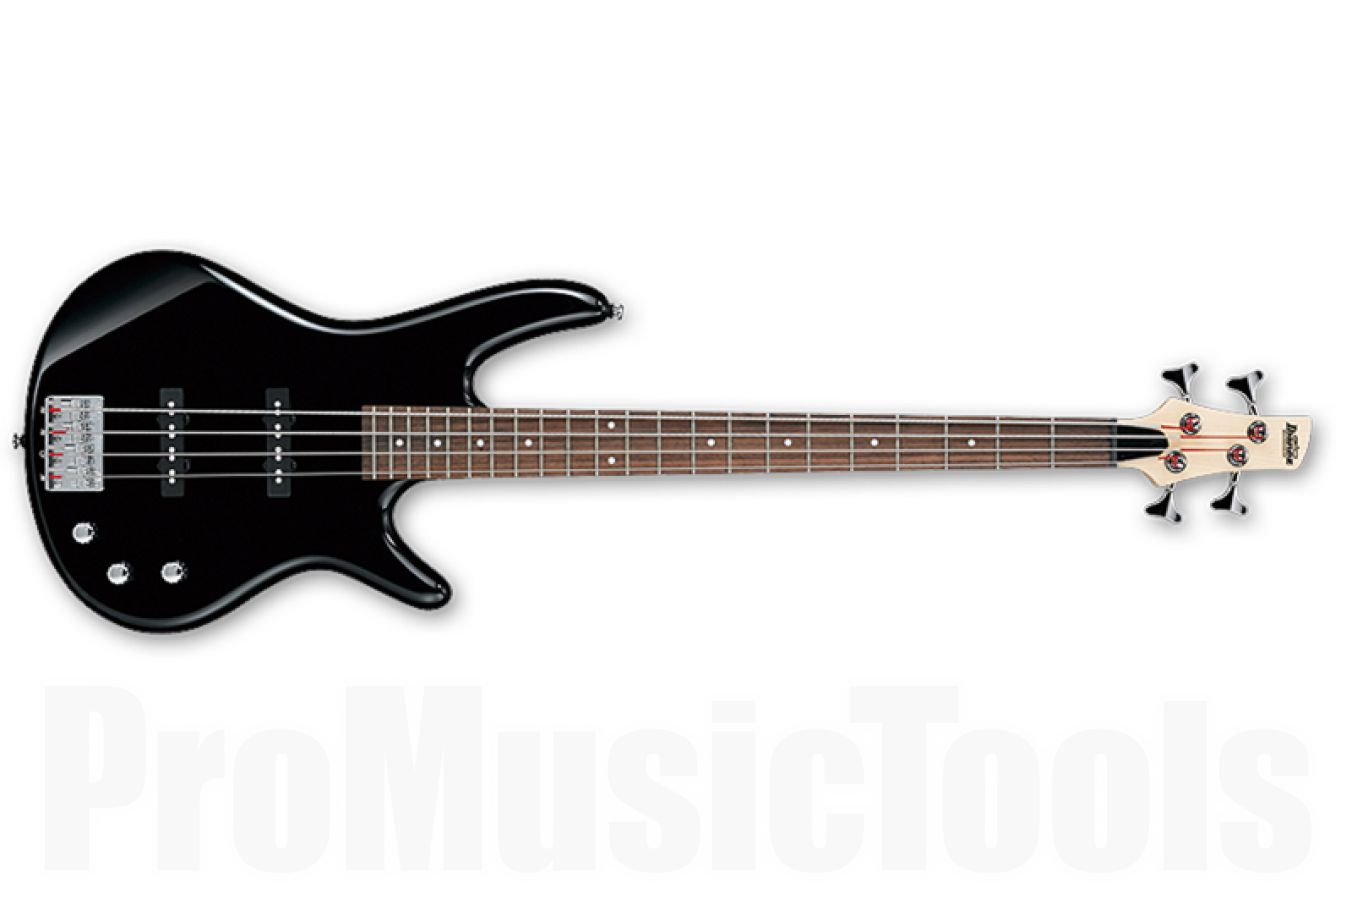 Ibanez GSR180 BK - Black - b-stock (1x opened box)